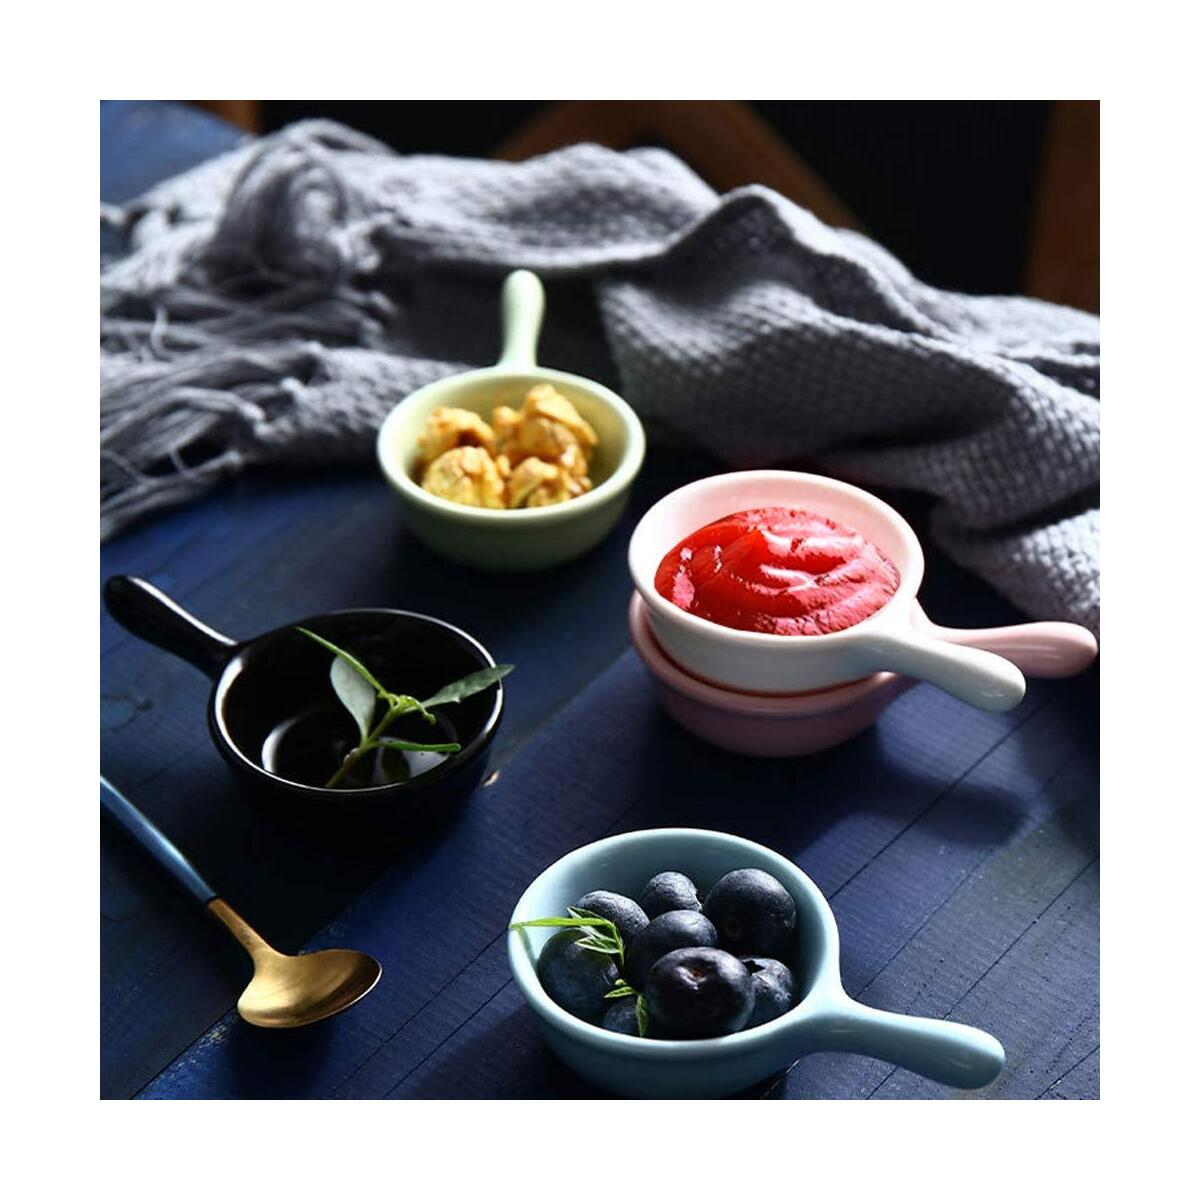 Small Bowls Soy Sauce Dish Side Dipping Condiment Server Asian Pinch Japanese Mini Cup 10Pcs Ceramic Sushi Snack Appetizer Plate Set Colors Salsa Tray with Handle, Dishwasher and Microwave Safe